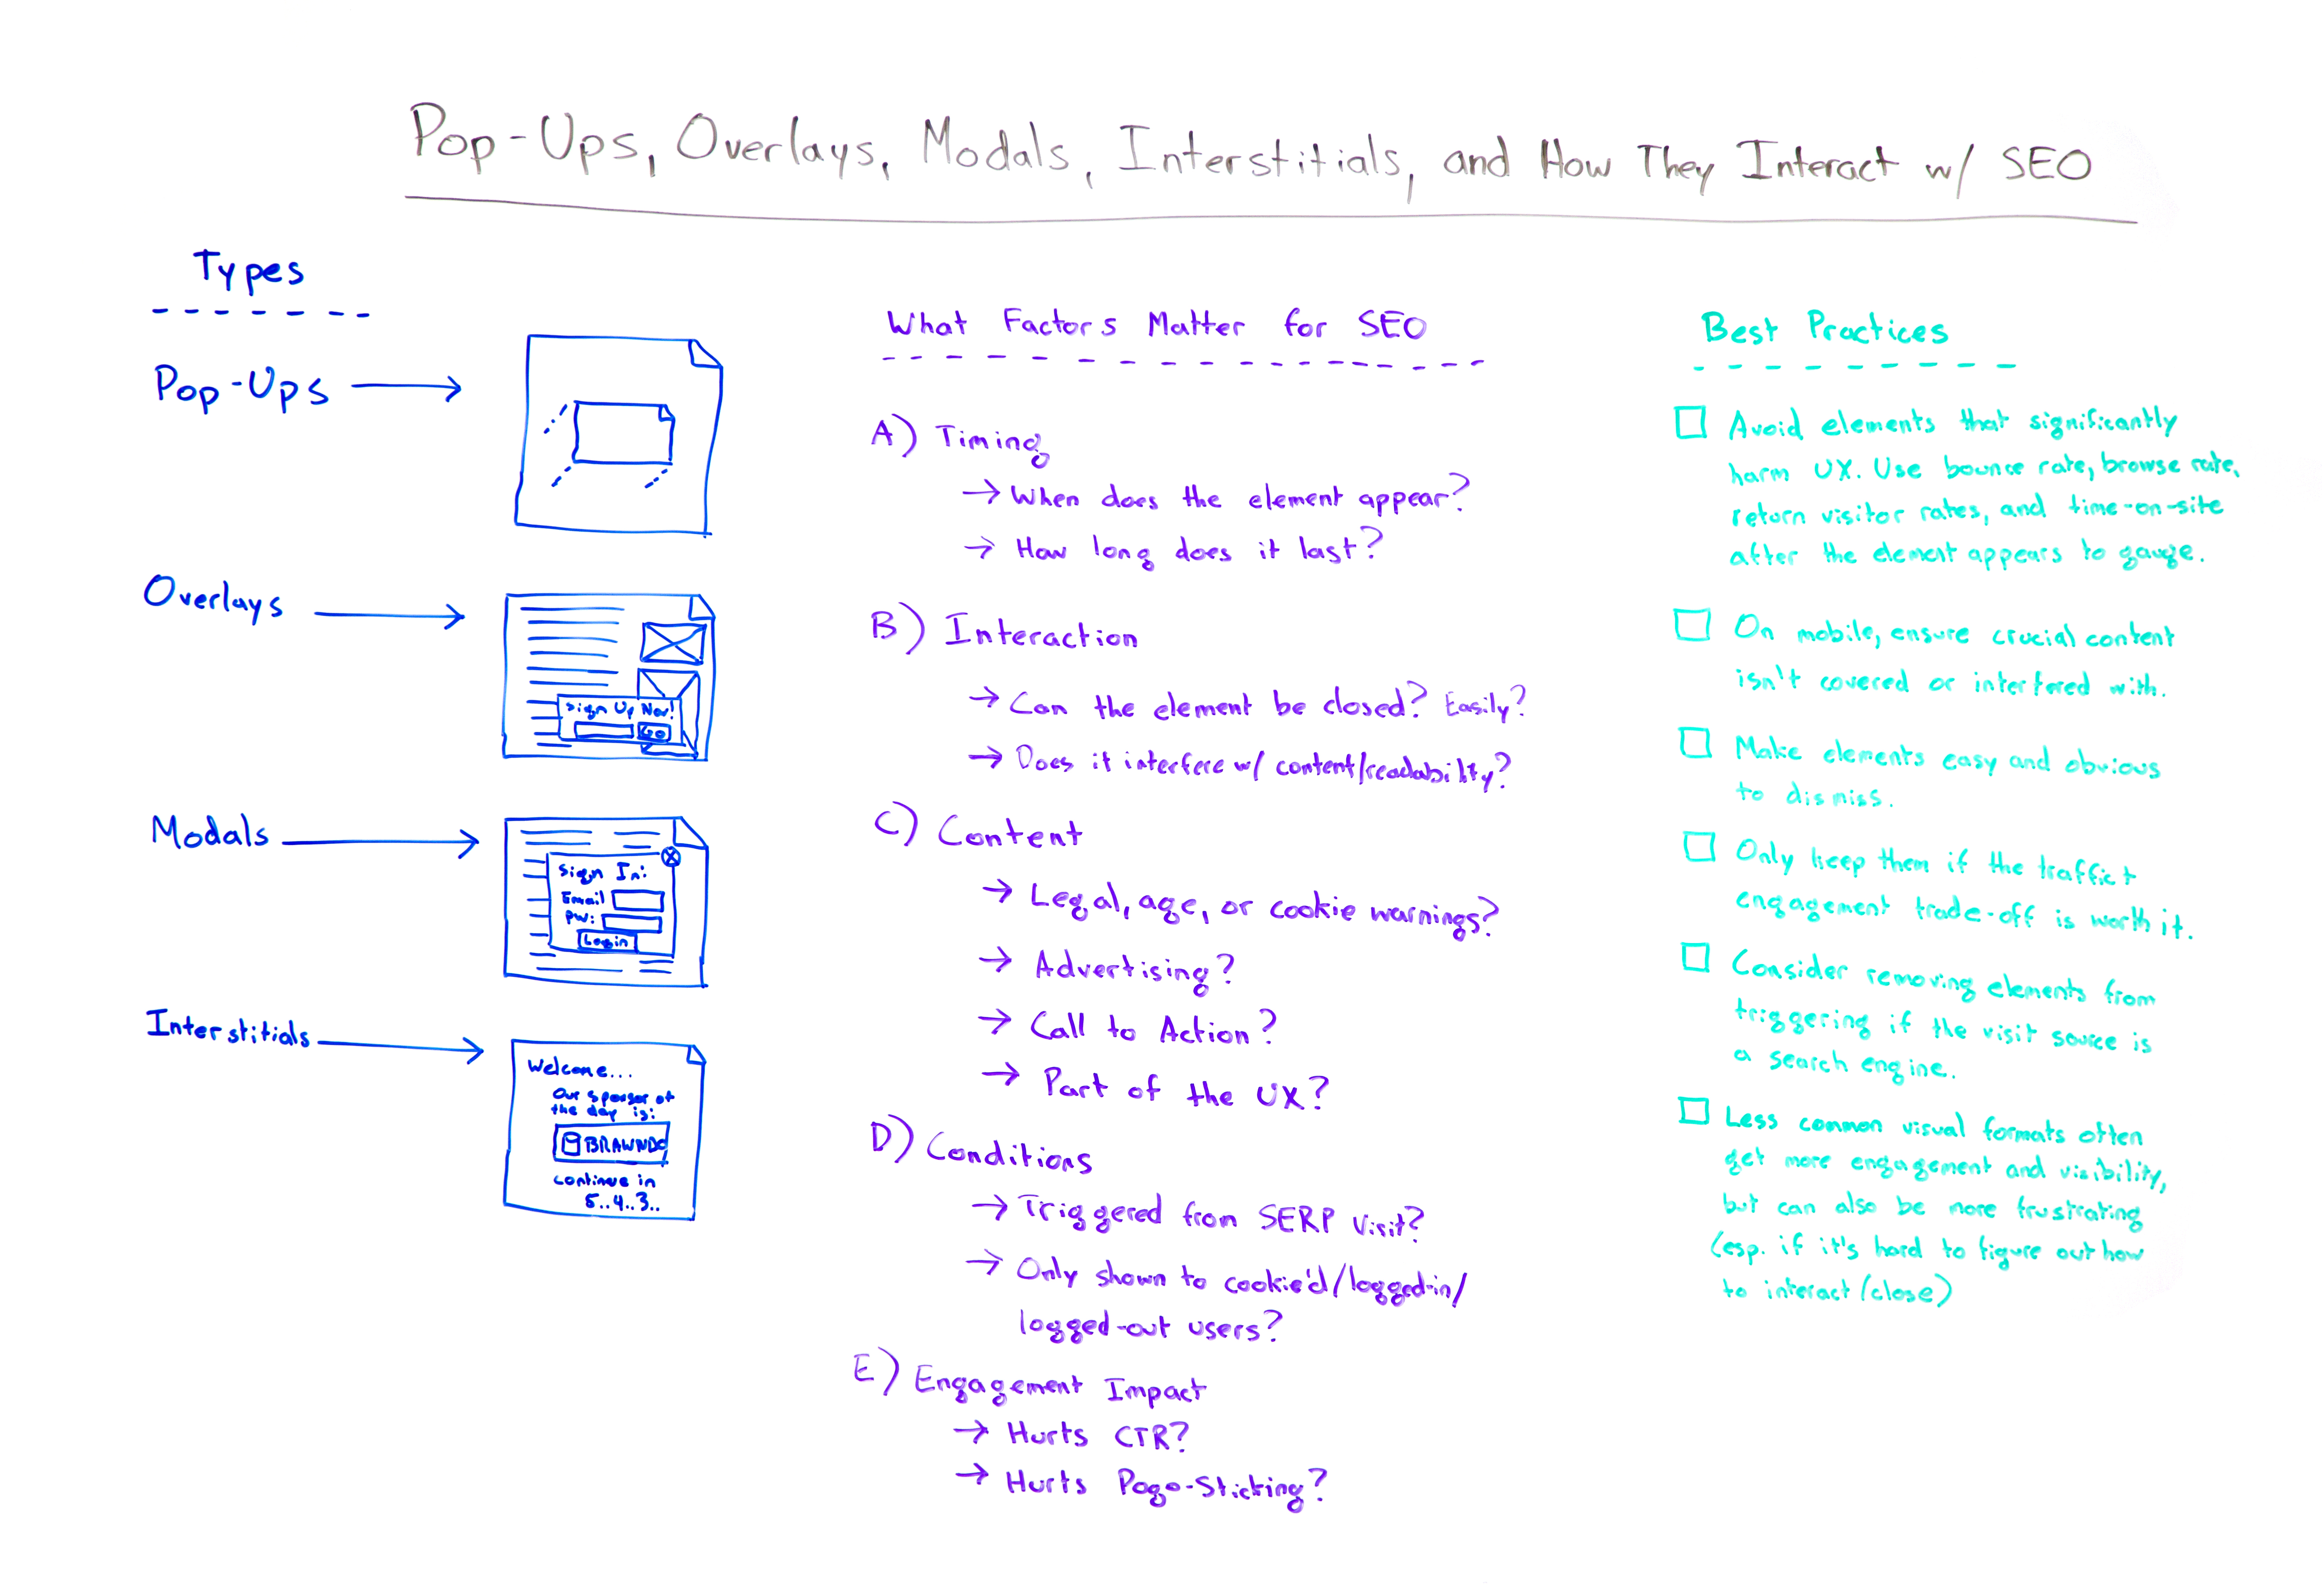 Pop-ups, modals, overlays, interstitials, and how they work with SEO